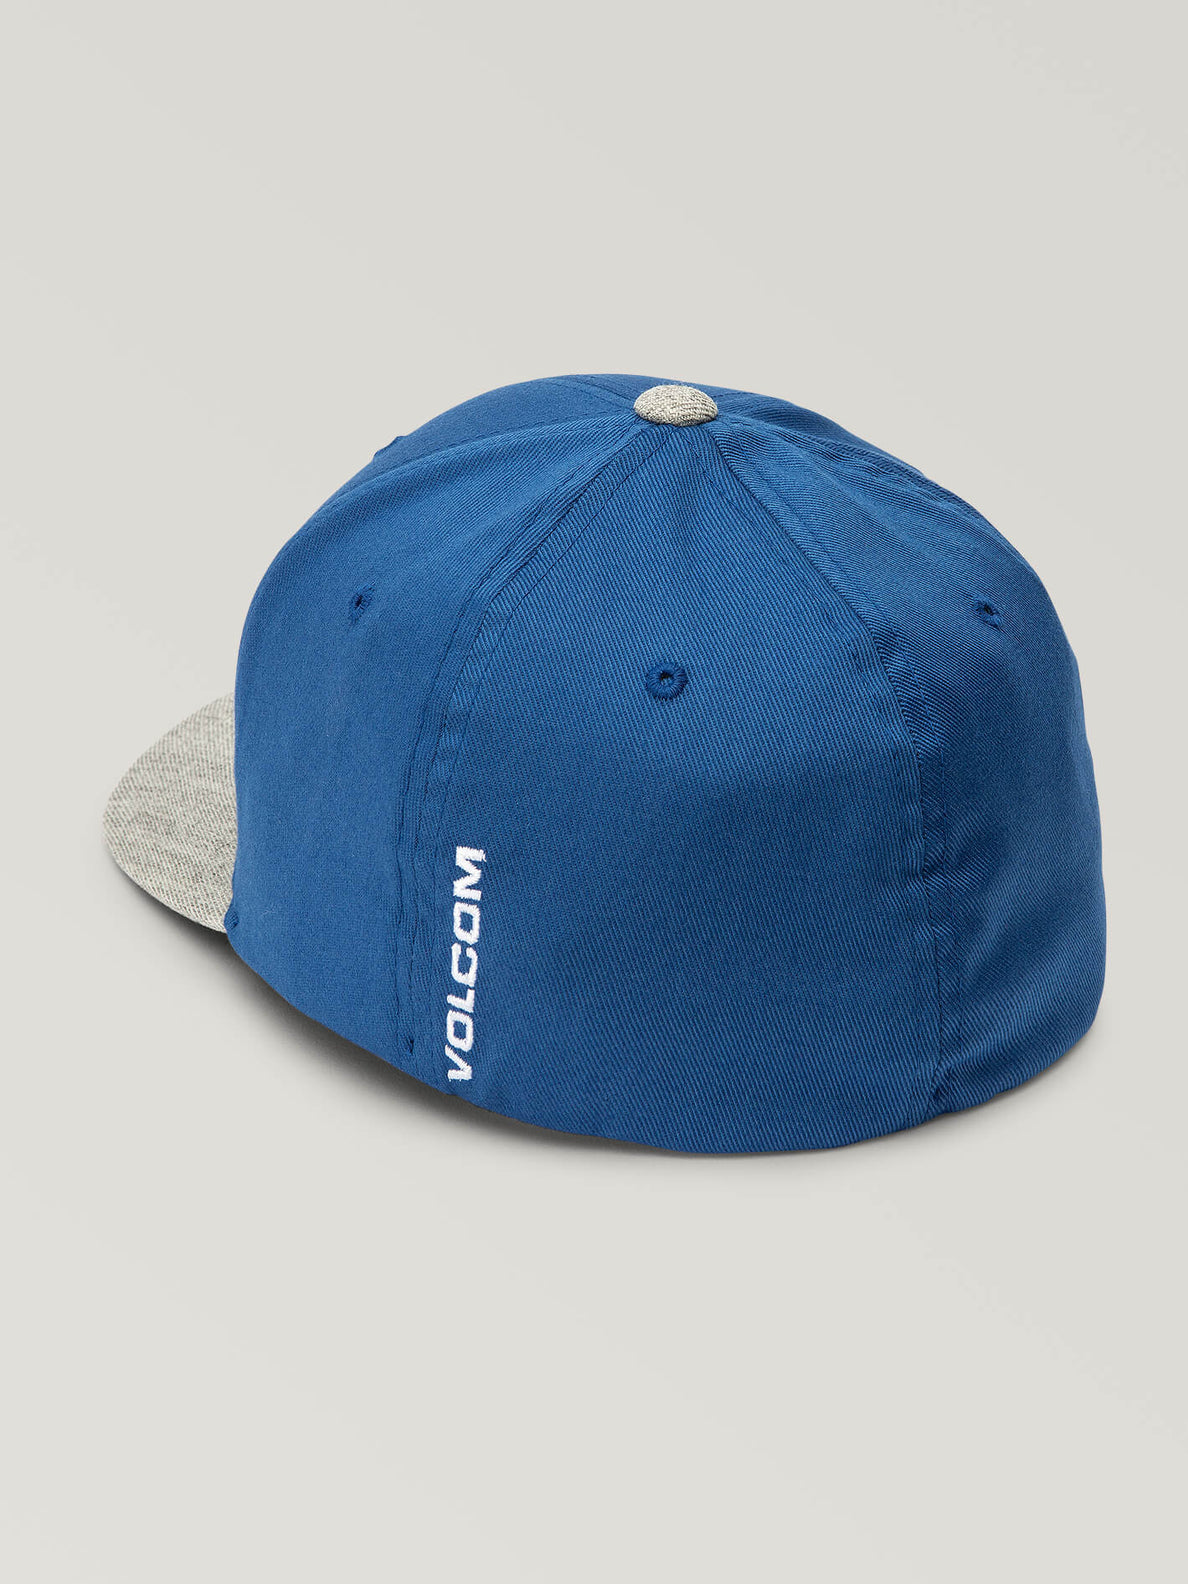 Full Stone Xfit Hat In Coastal Blue, Back View